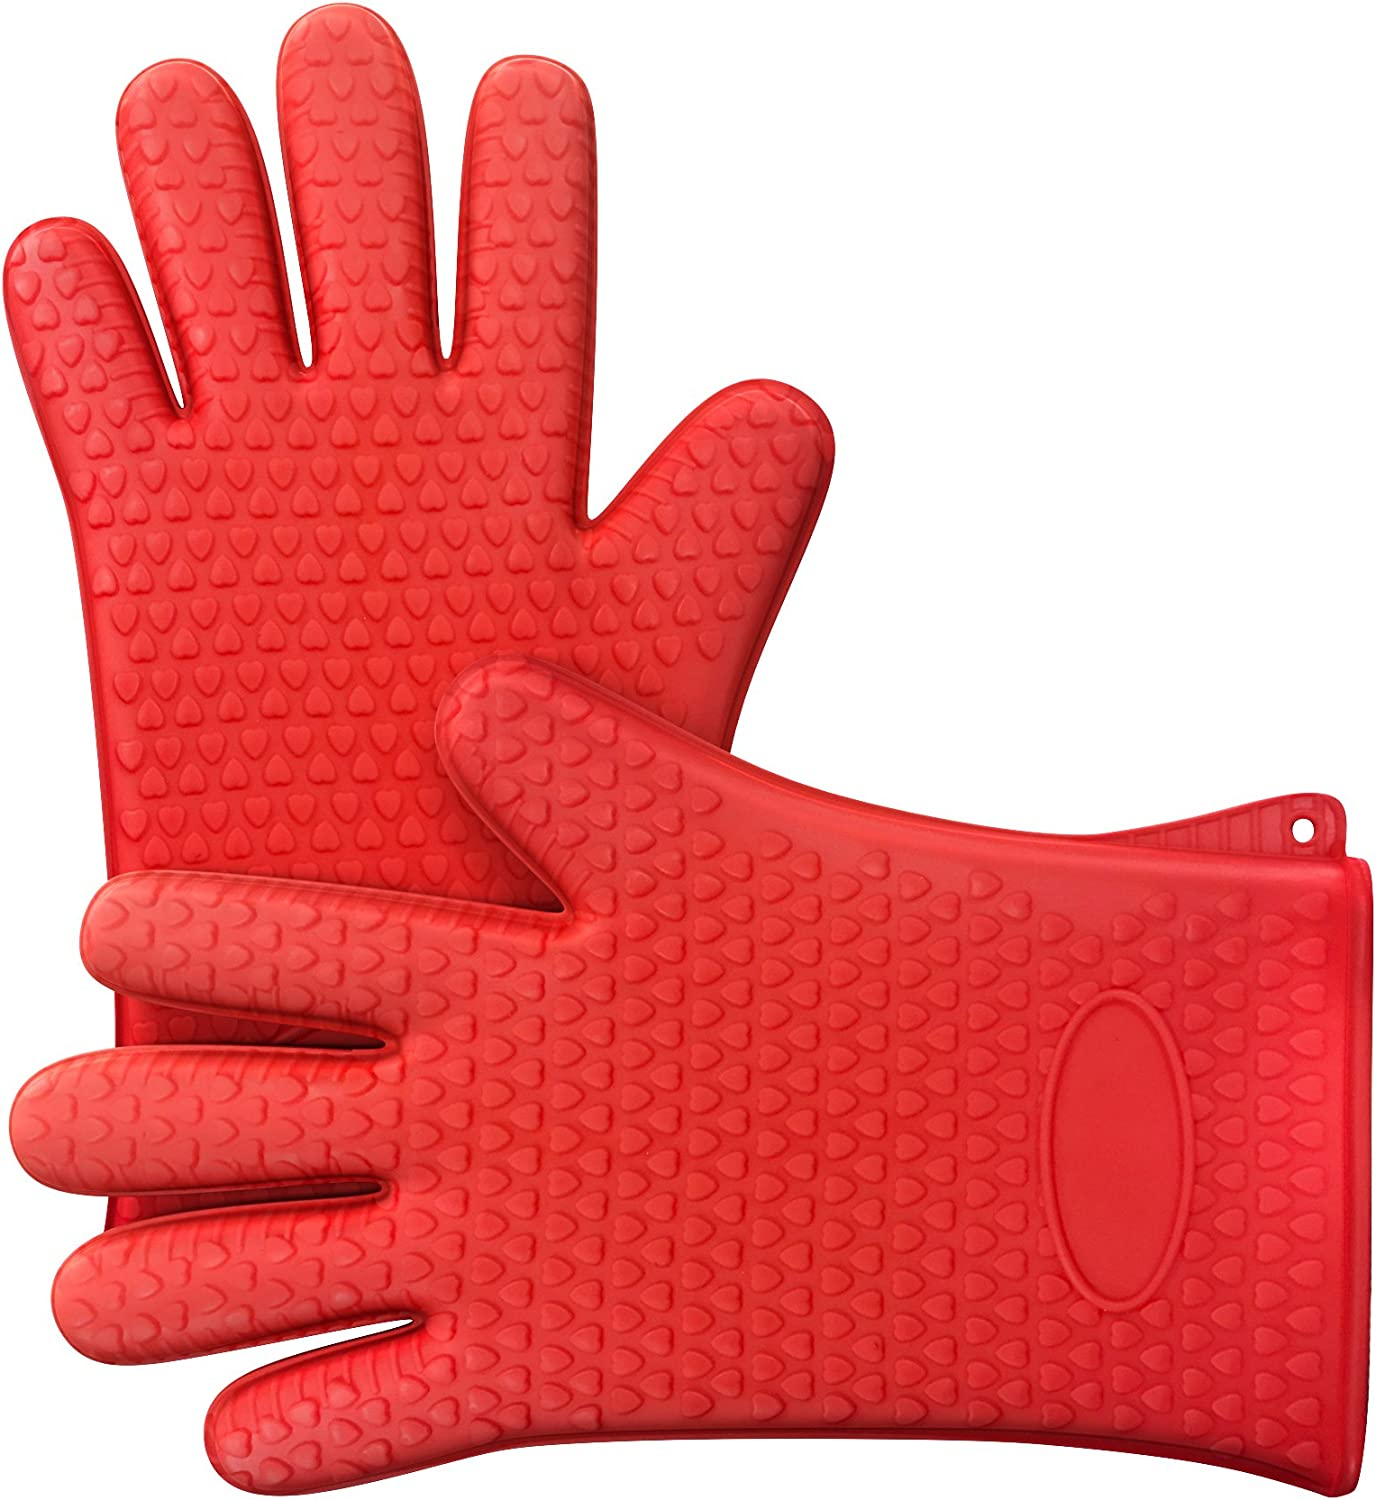 Silicone Oven Gloves- Safe Nonslip Grip Heat Resistant Pair of Mitts/Potholders for Grilling, Barbecue, Baking, Cooking and More by Chef Buddy (Red)